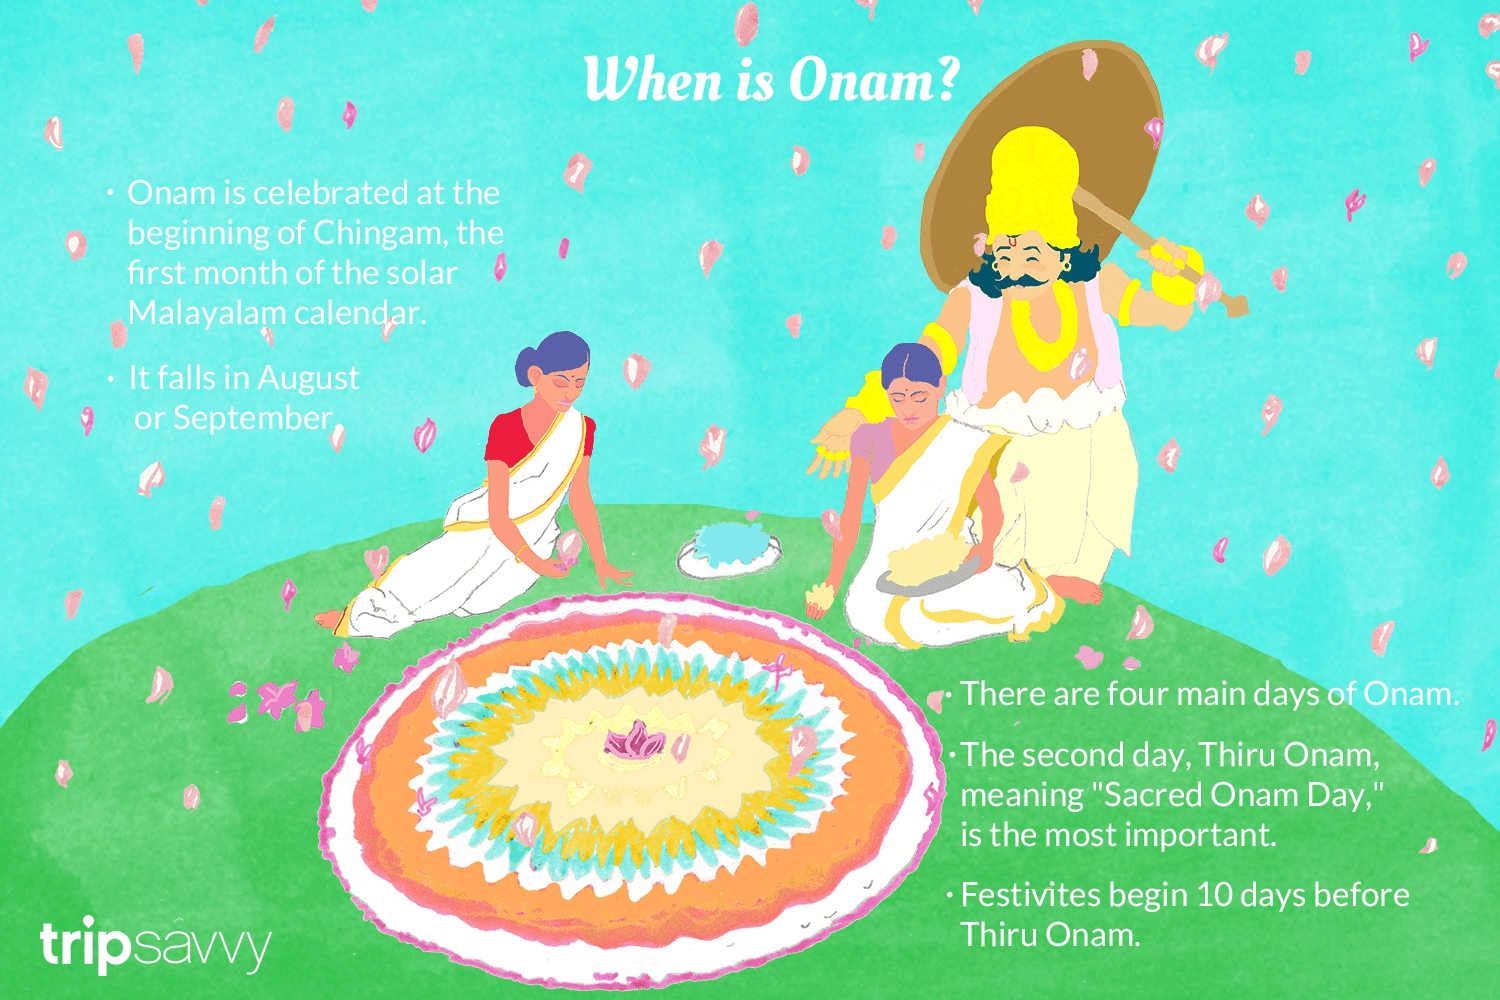 Onam Dates: When Is Onam In 2018, 2019, And 2020? pertaining to Calendar 2001 Malayalam August Image